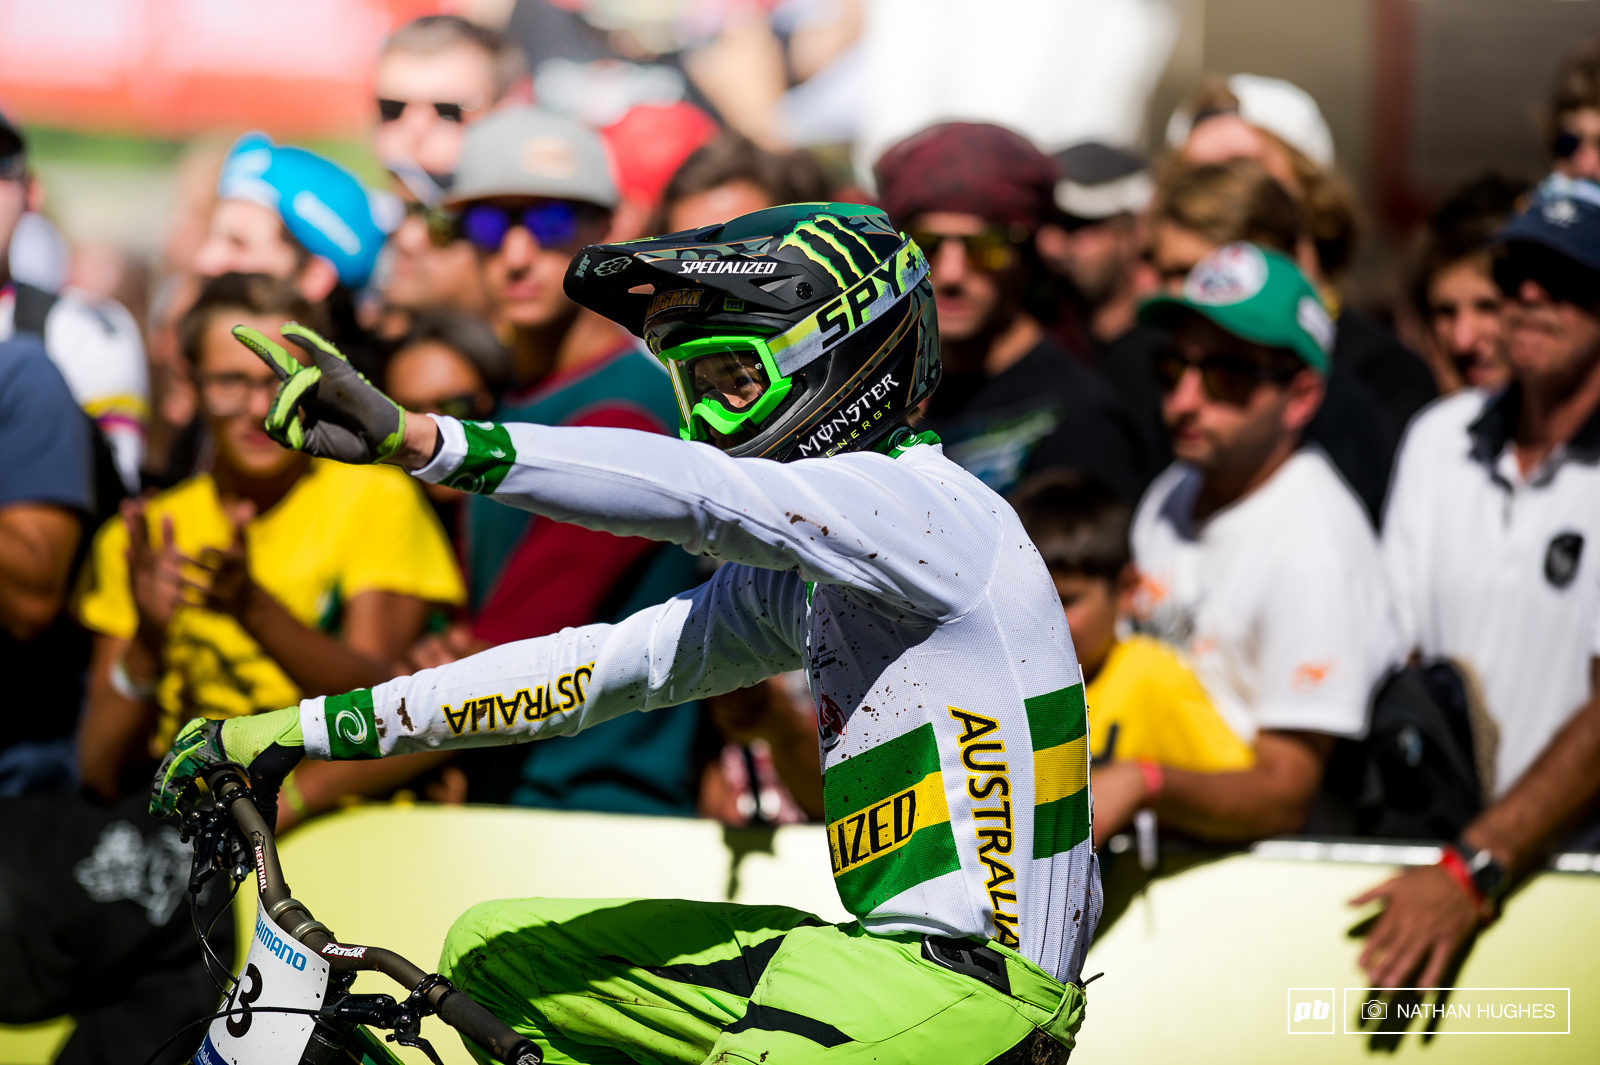 Still super stoked to on the week Troy s had a hell of a season.